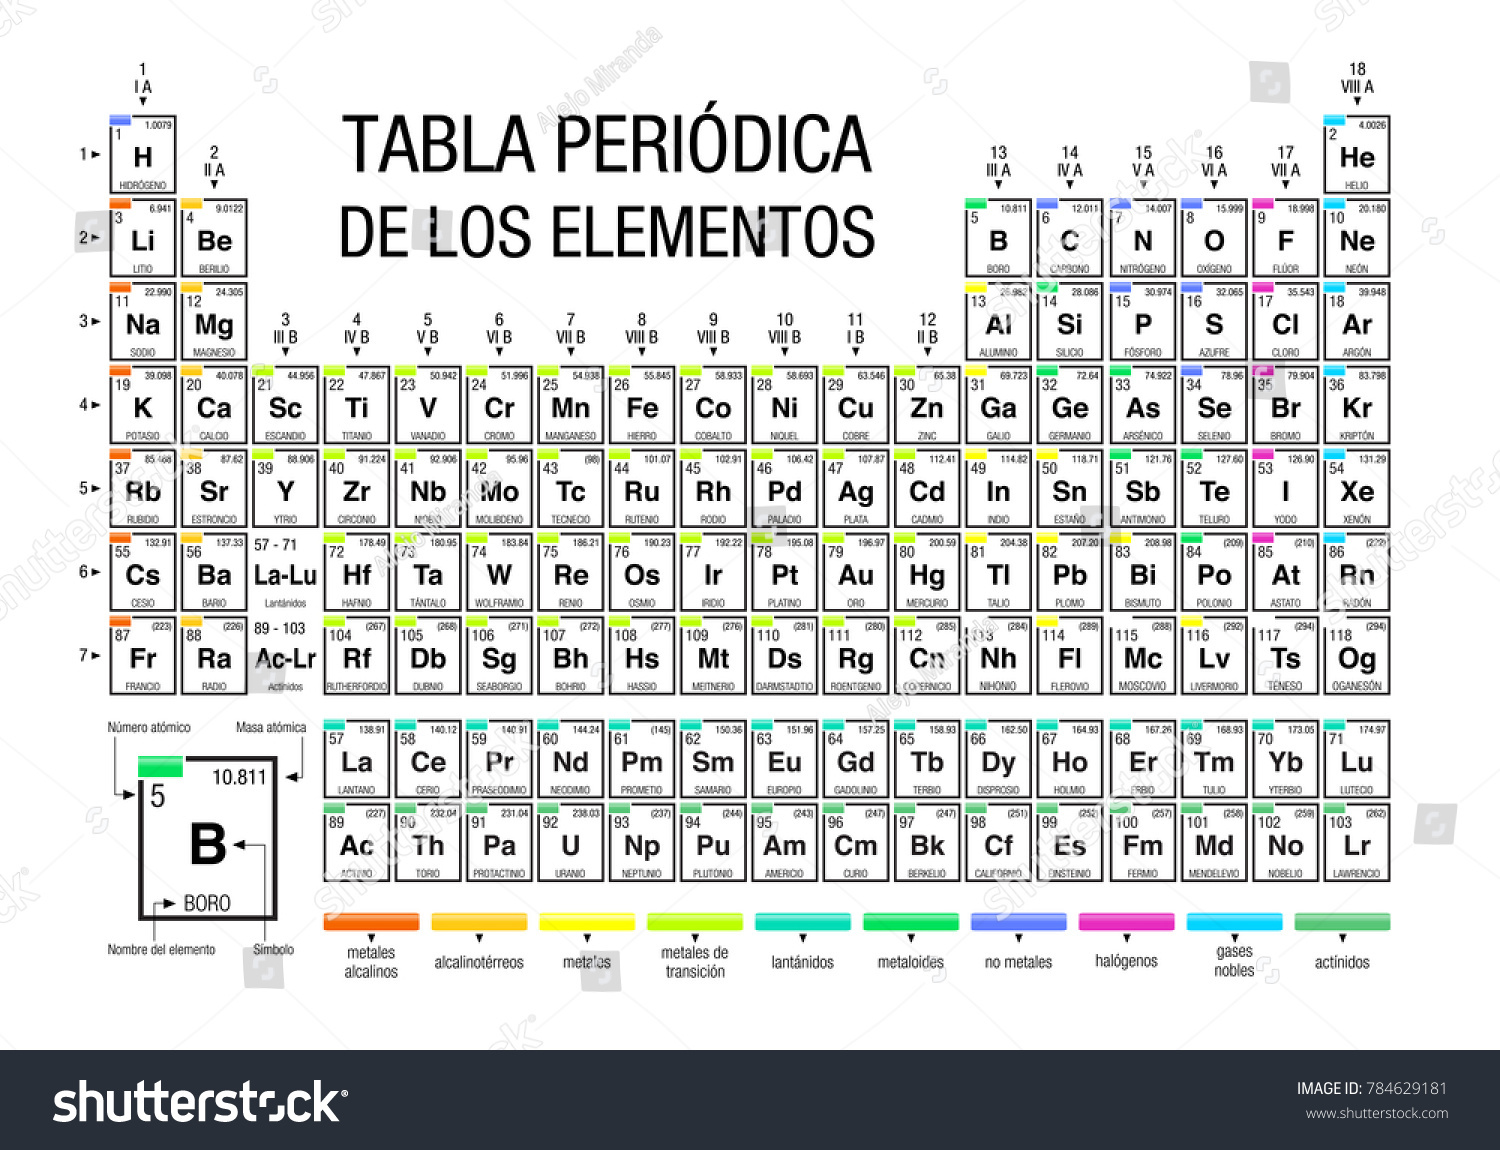 Tabla periodica de los elementos periodic stock vector 784629181 tabla periodica de los elementos periodic table of elements in spanish language on white urtaz Gallery